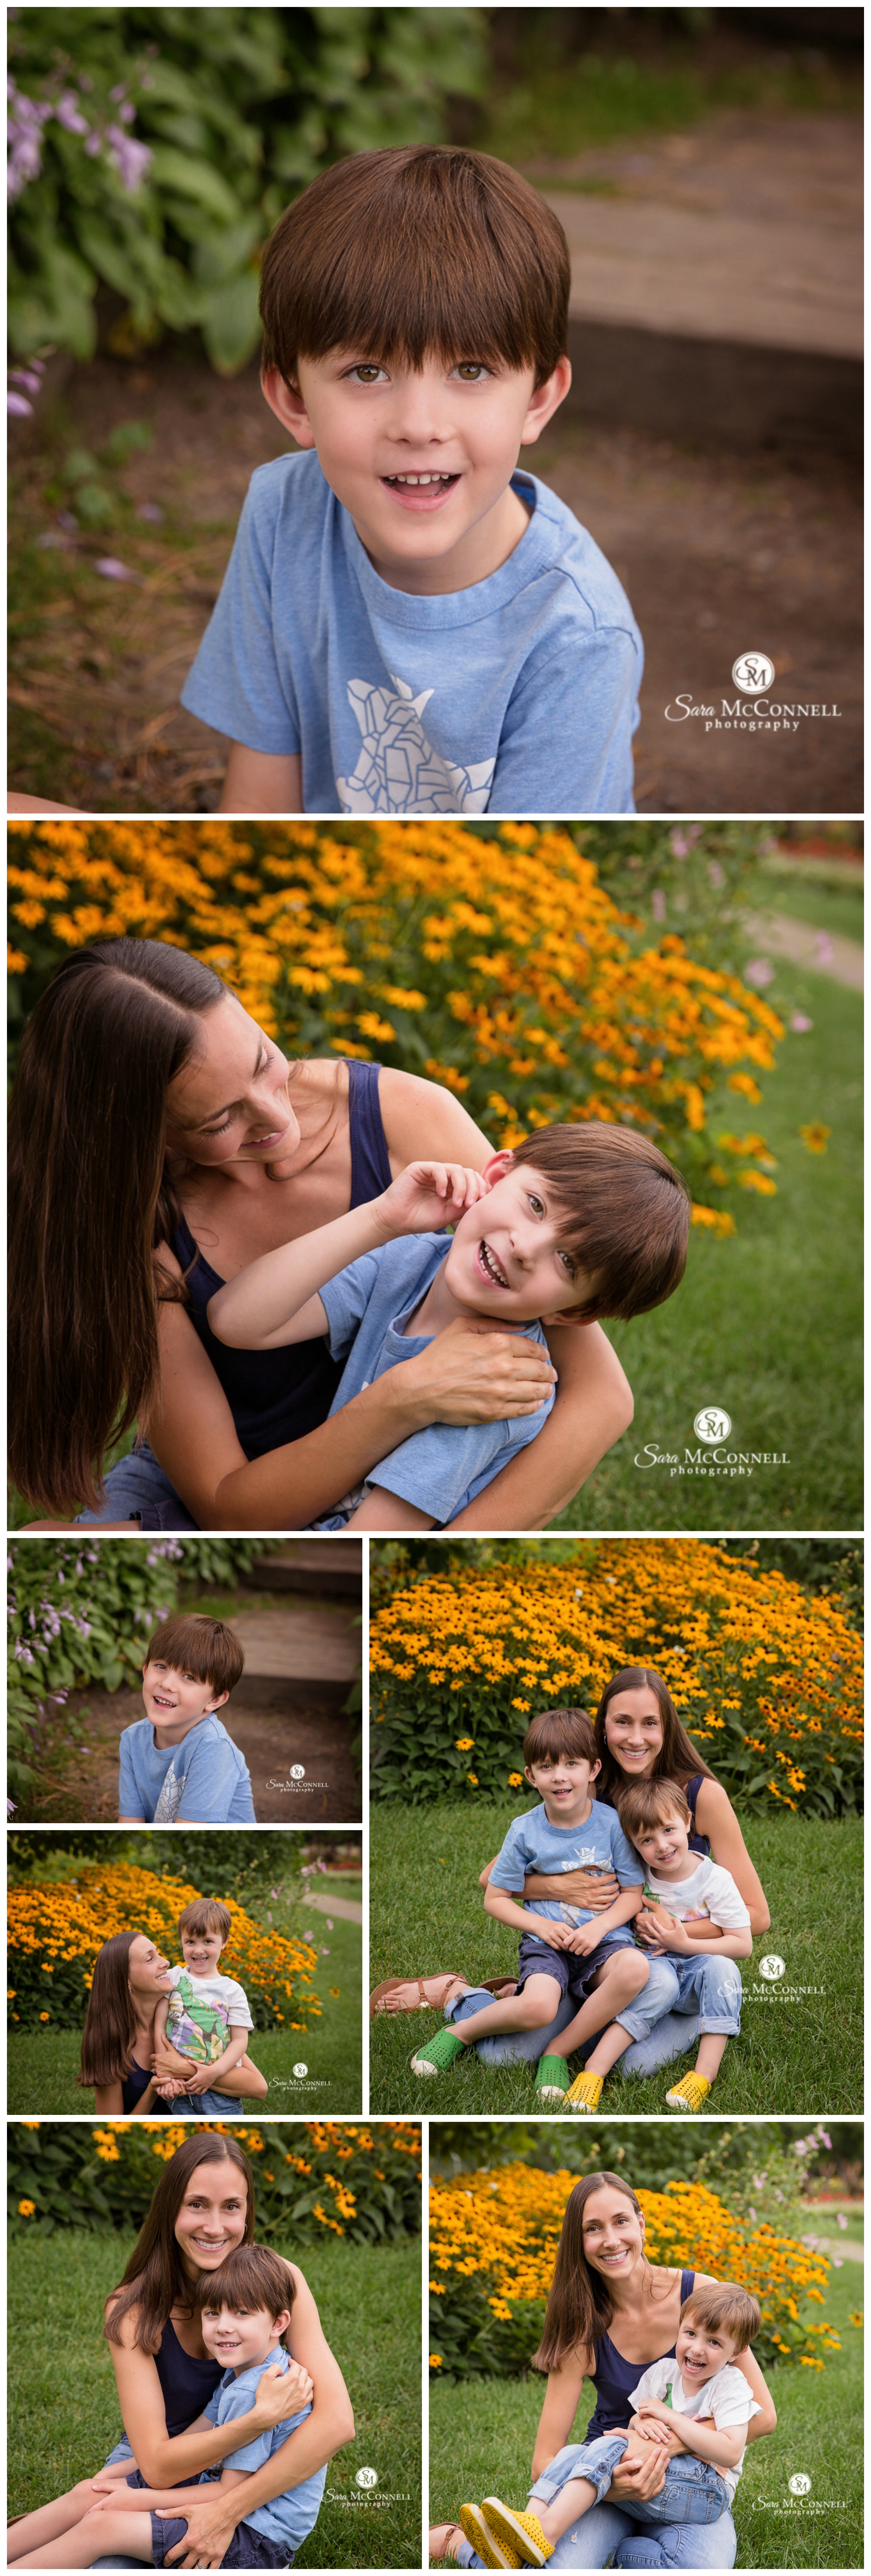 Summer family photos by Sara McConnell Photography